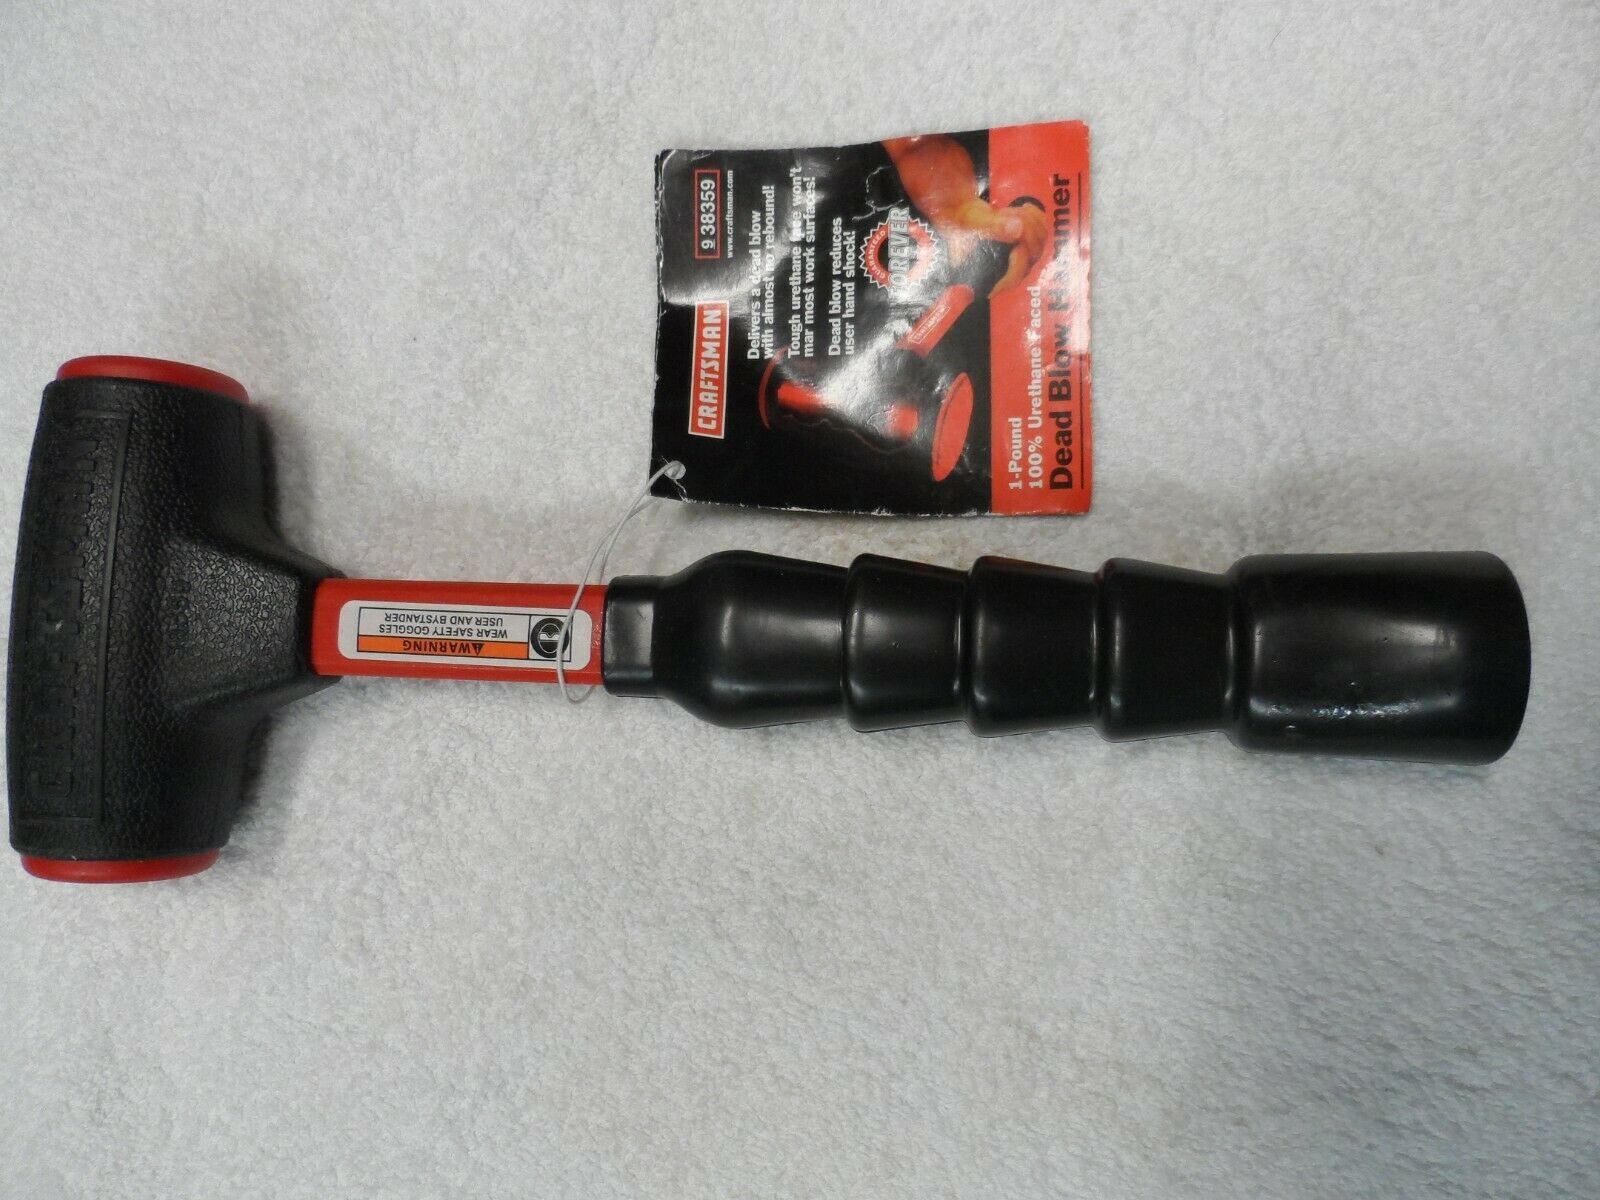 Craftsman Usa Made 3 Pound Dead Blow Hammer 38395 For Sale Online Ebay Sold by outfittercountry an ebay marketplace seller. craftsman 1 pound 1 lb dead blow hammer made in usa part 38359